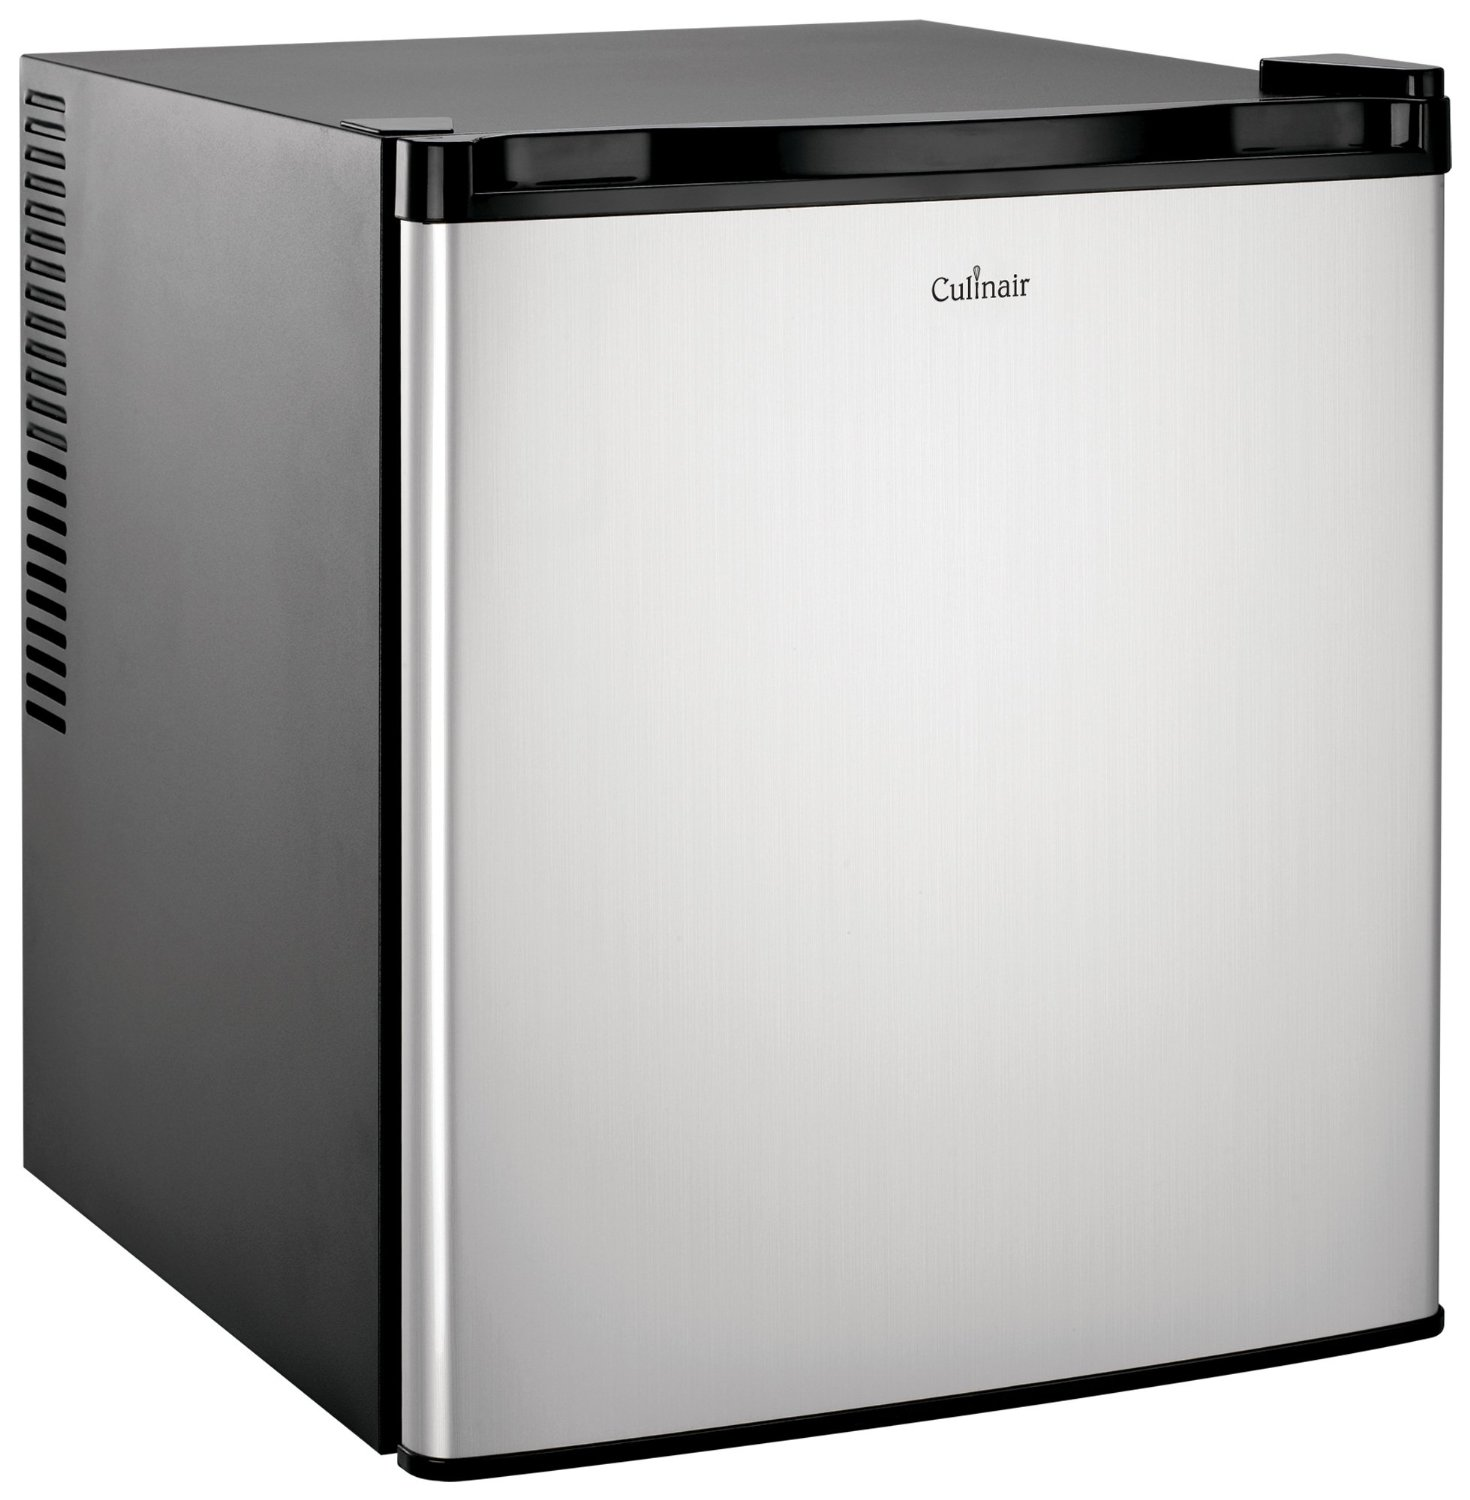 tiny refrigerator office. Culinair Af100s Compact Refrigerator Tiny Office A